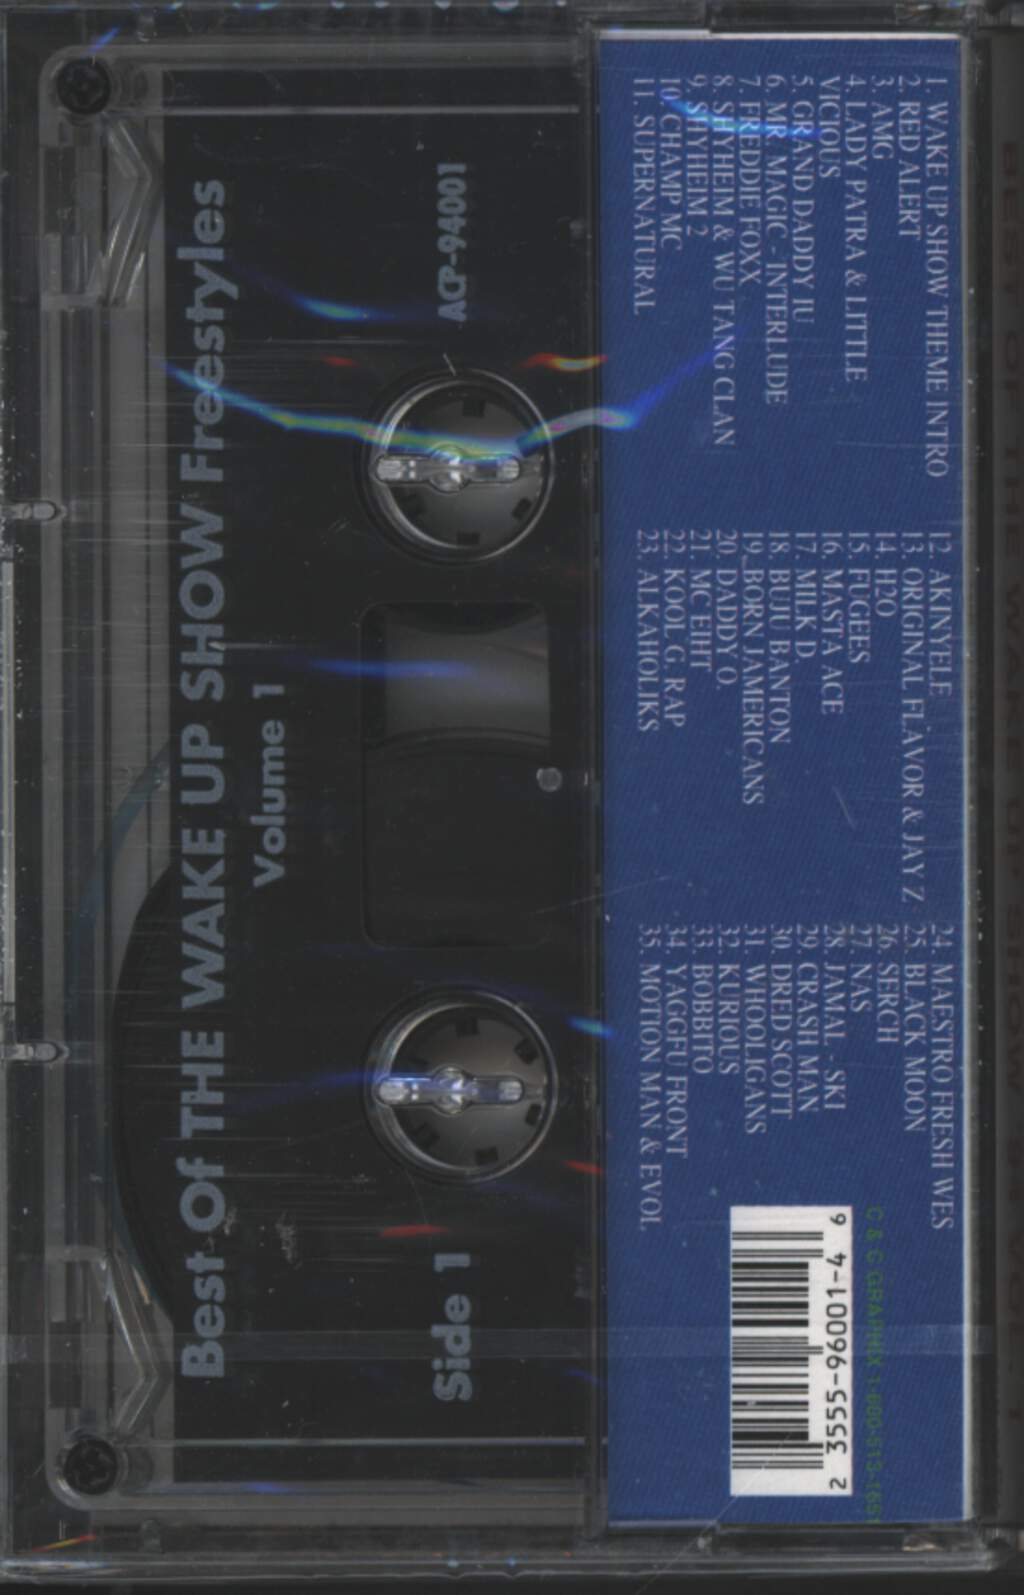 Sway & King Tech: Best Of The Wake Up Show Free Styles '94 Vol. 1, Tape